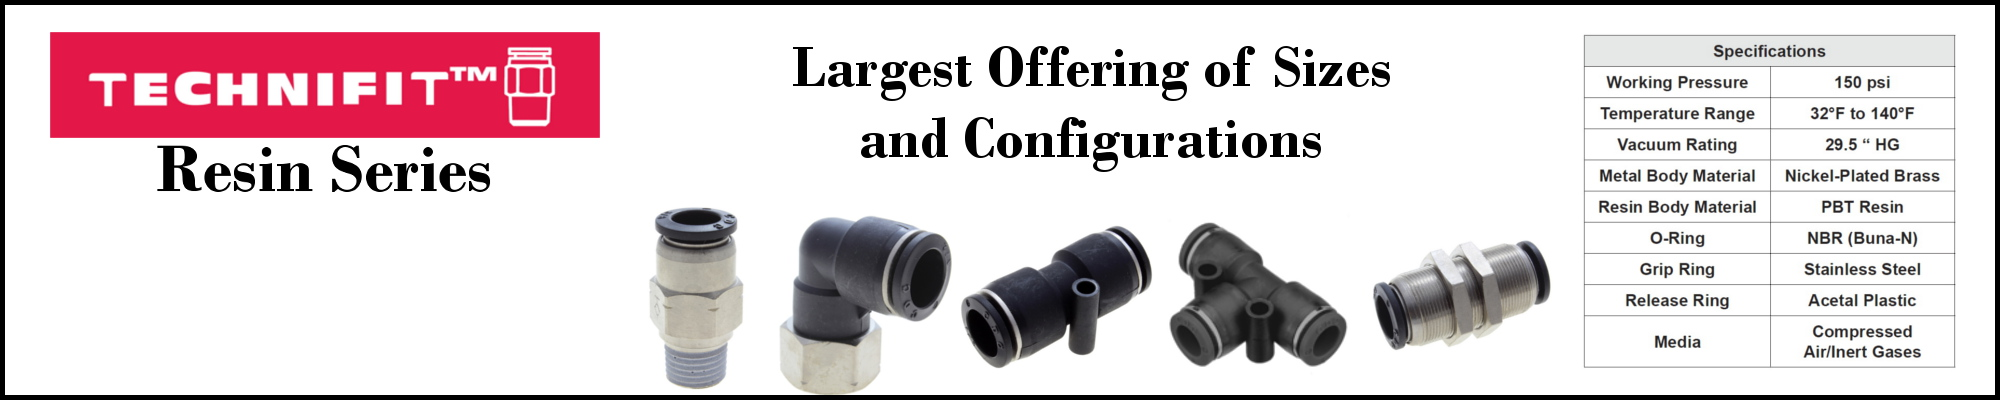 Technifit Resin Series Push-to-Connect Fittings